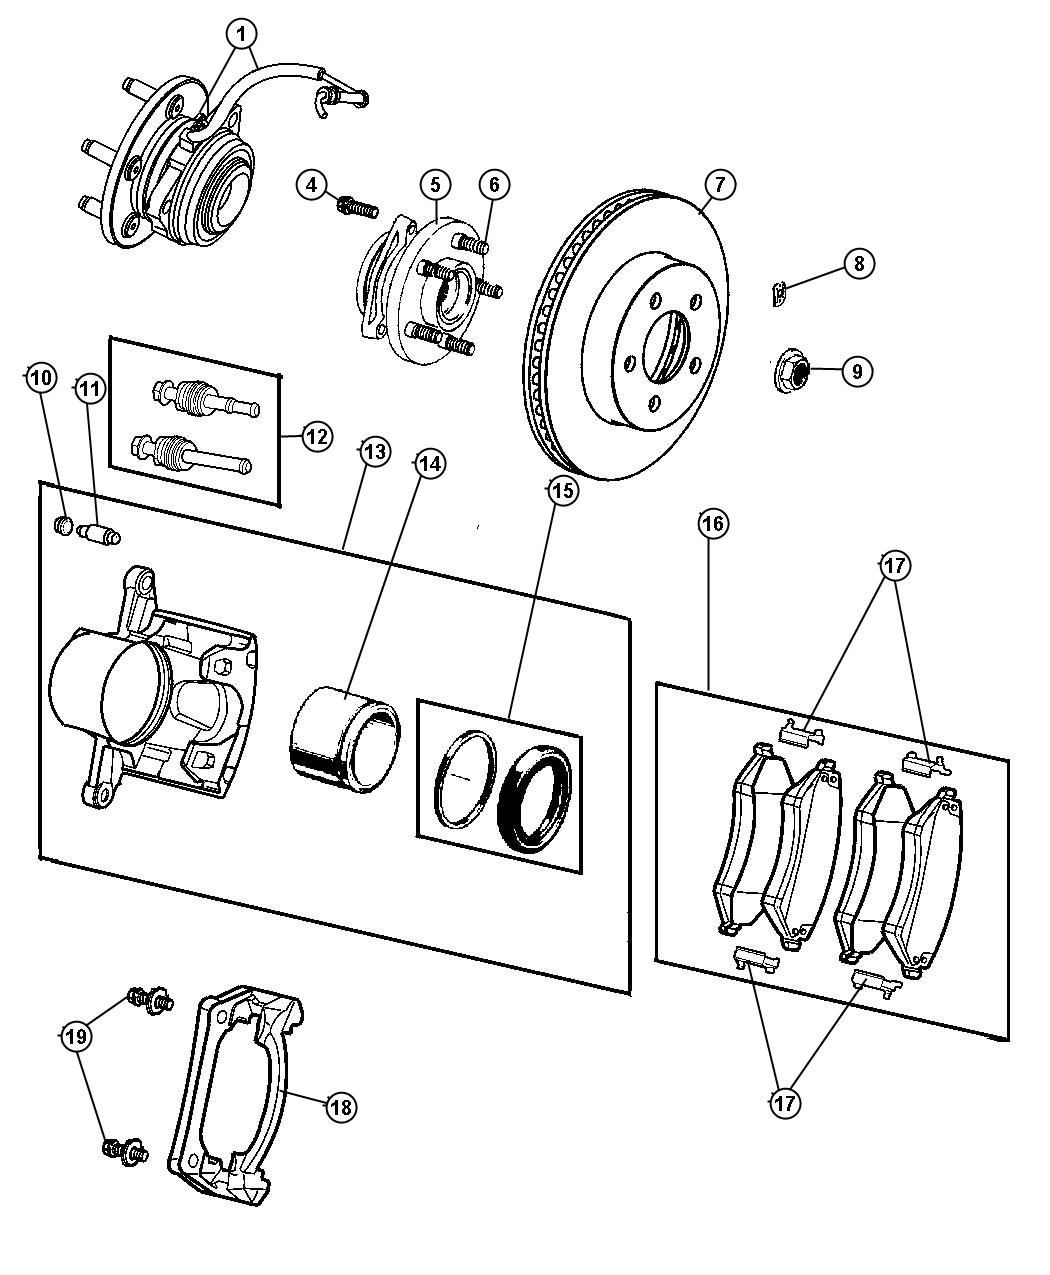 Diagram Brakes,Front. for your 2005 Jeep Liberty LIMITED EDITION 2.8L Turbo 4 Cyl Diesel A/T 4X4